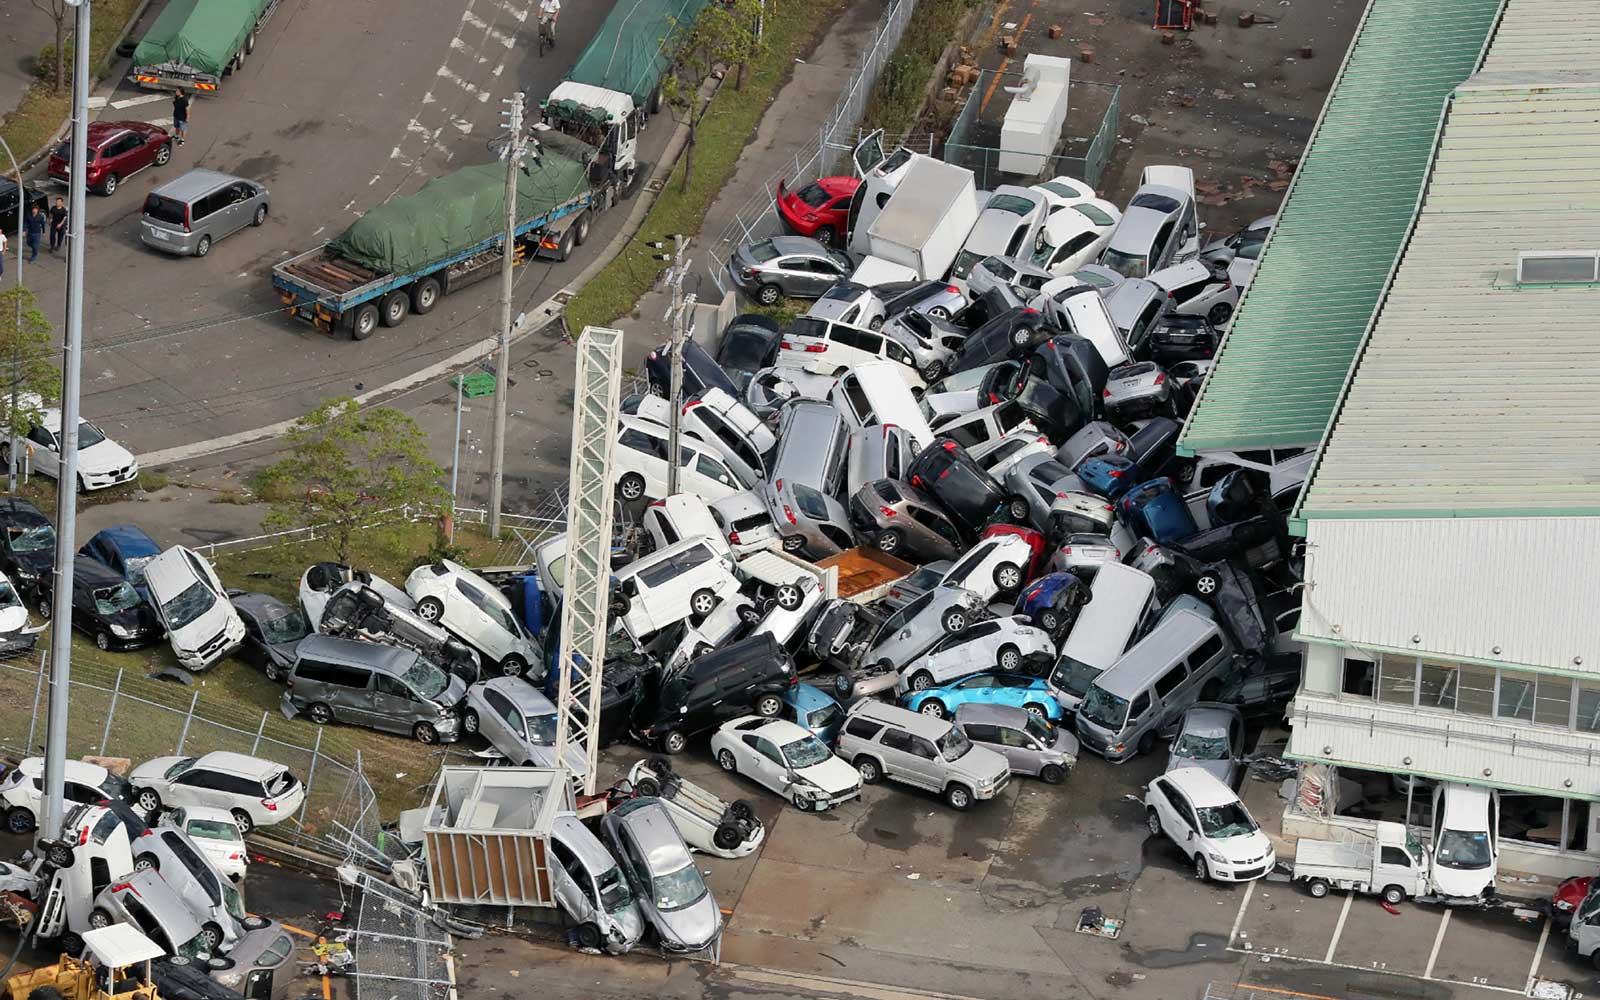 An aerial view from a Jiji Press helicopter shows vehicles piled in a heap due to strong winds in Kobe, Hyogo prefecture on September 5, 2018, after typhoon Jebi hit the west coast of Japan.